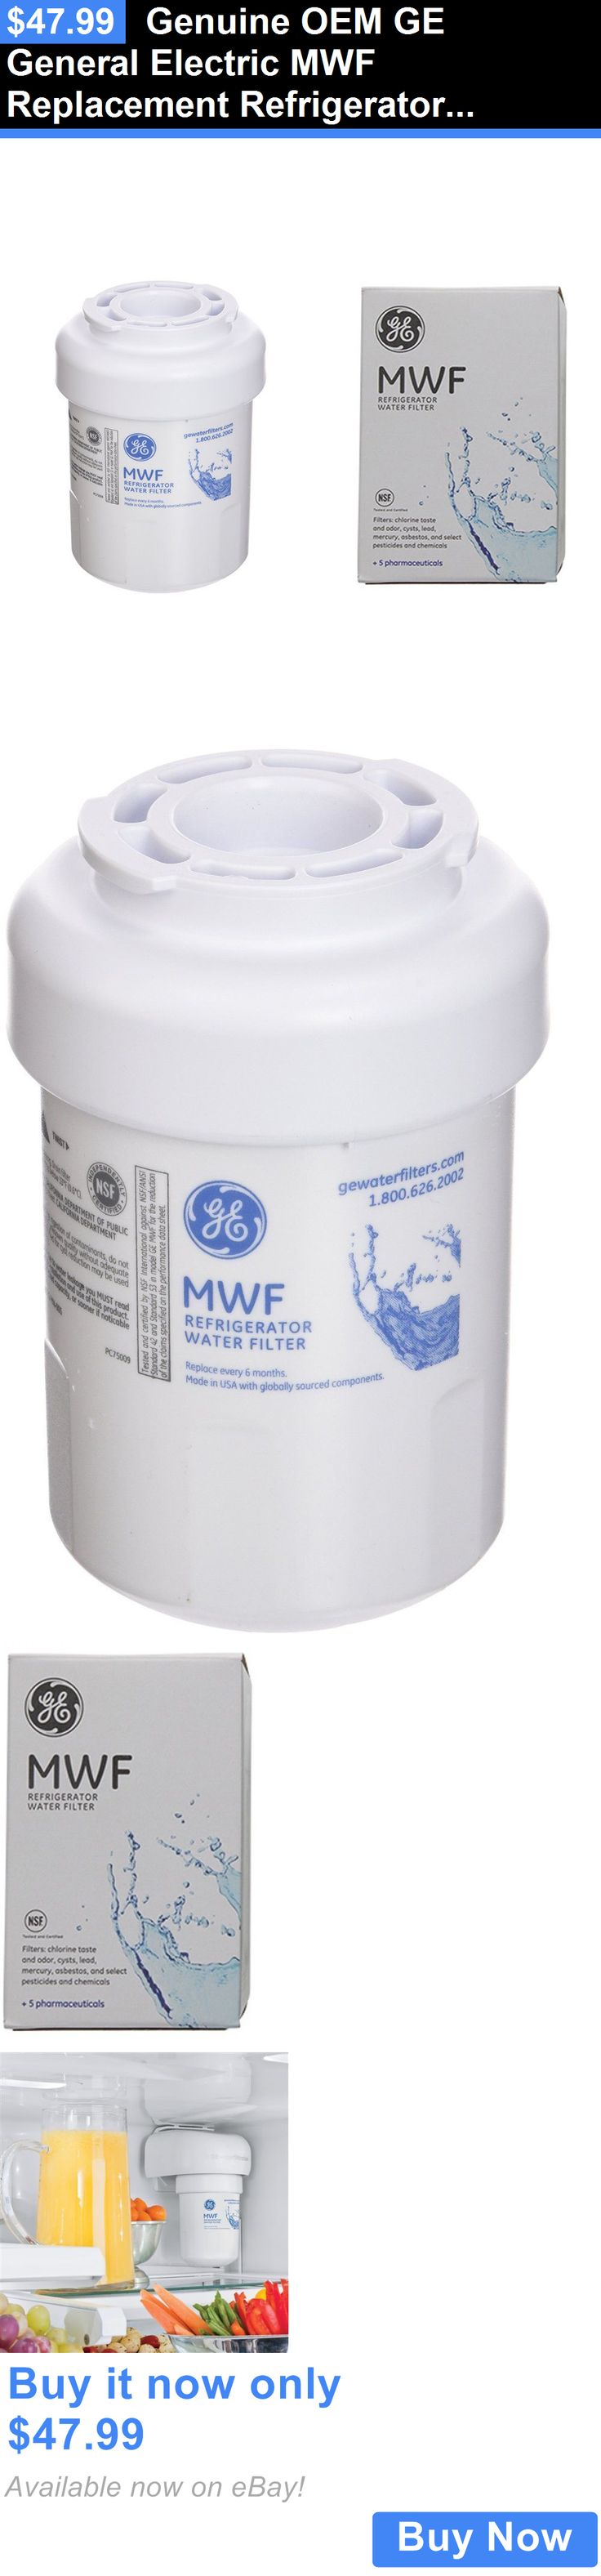 Major Appliances: Genuine Oem Ge General Electric Mwf Replacement Refrigerator Water Filter New BUY IT NOW ONLY: $47.99